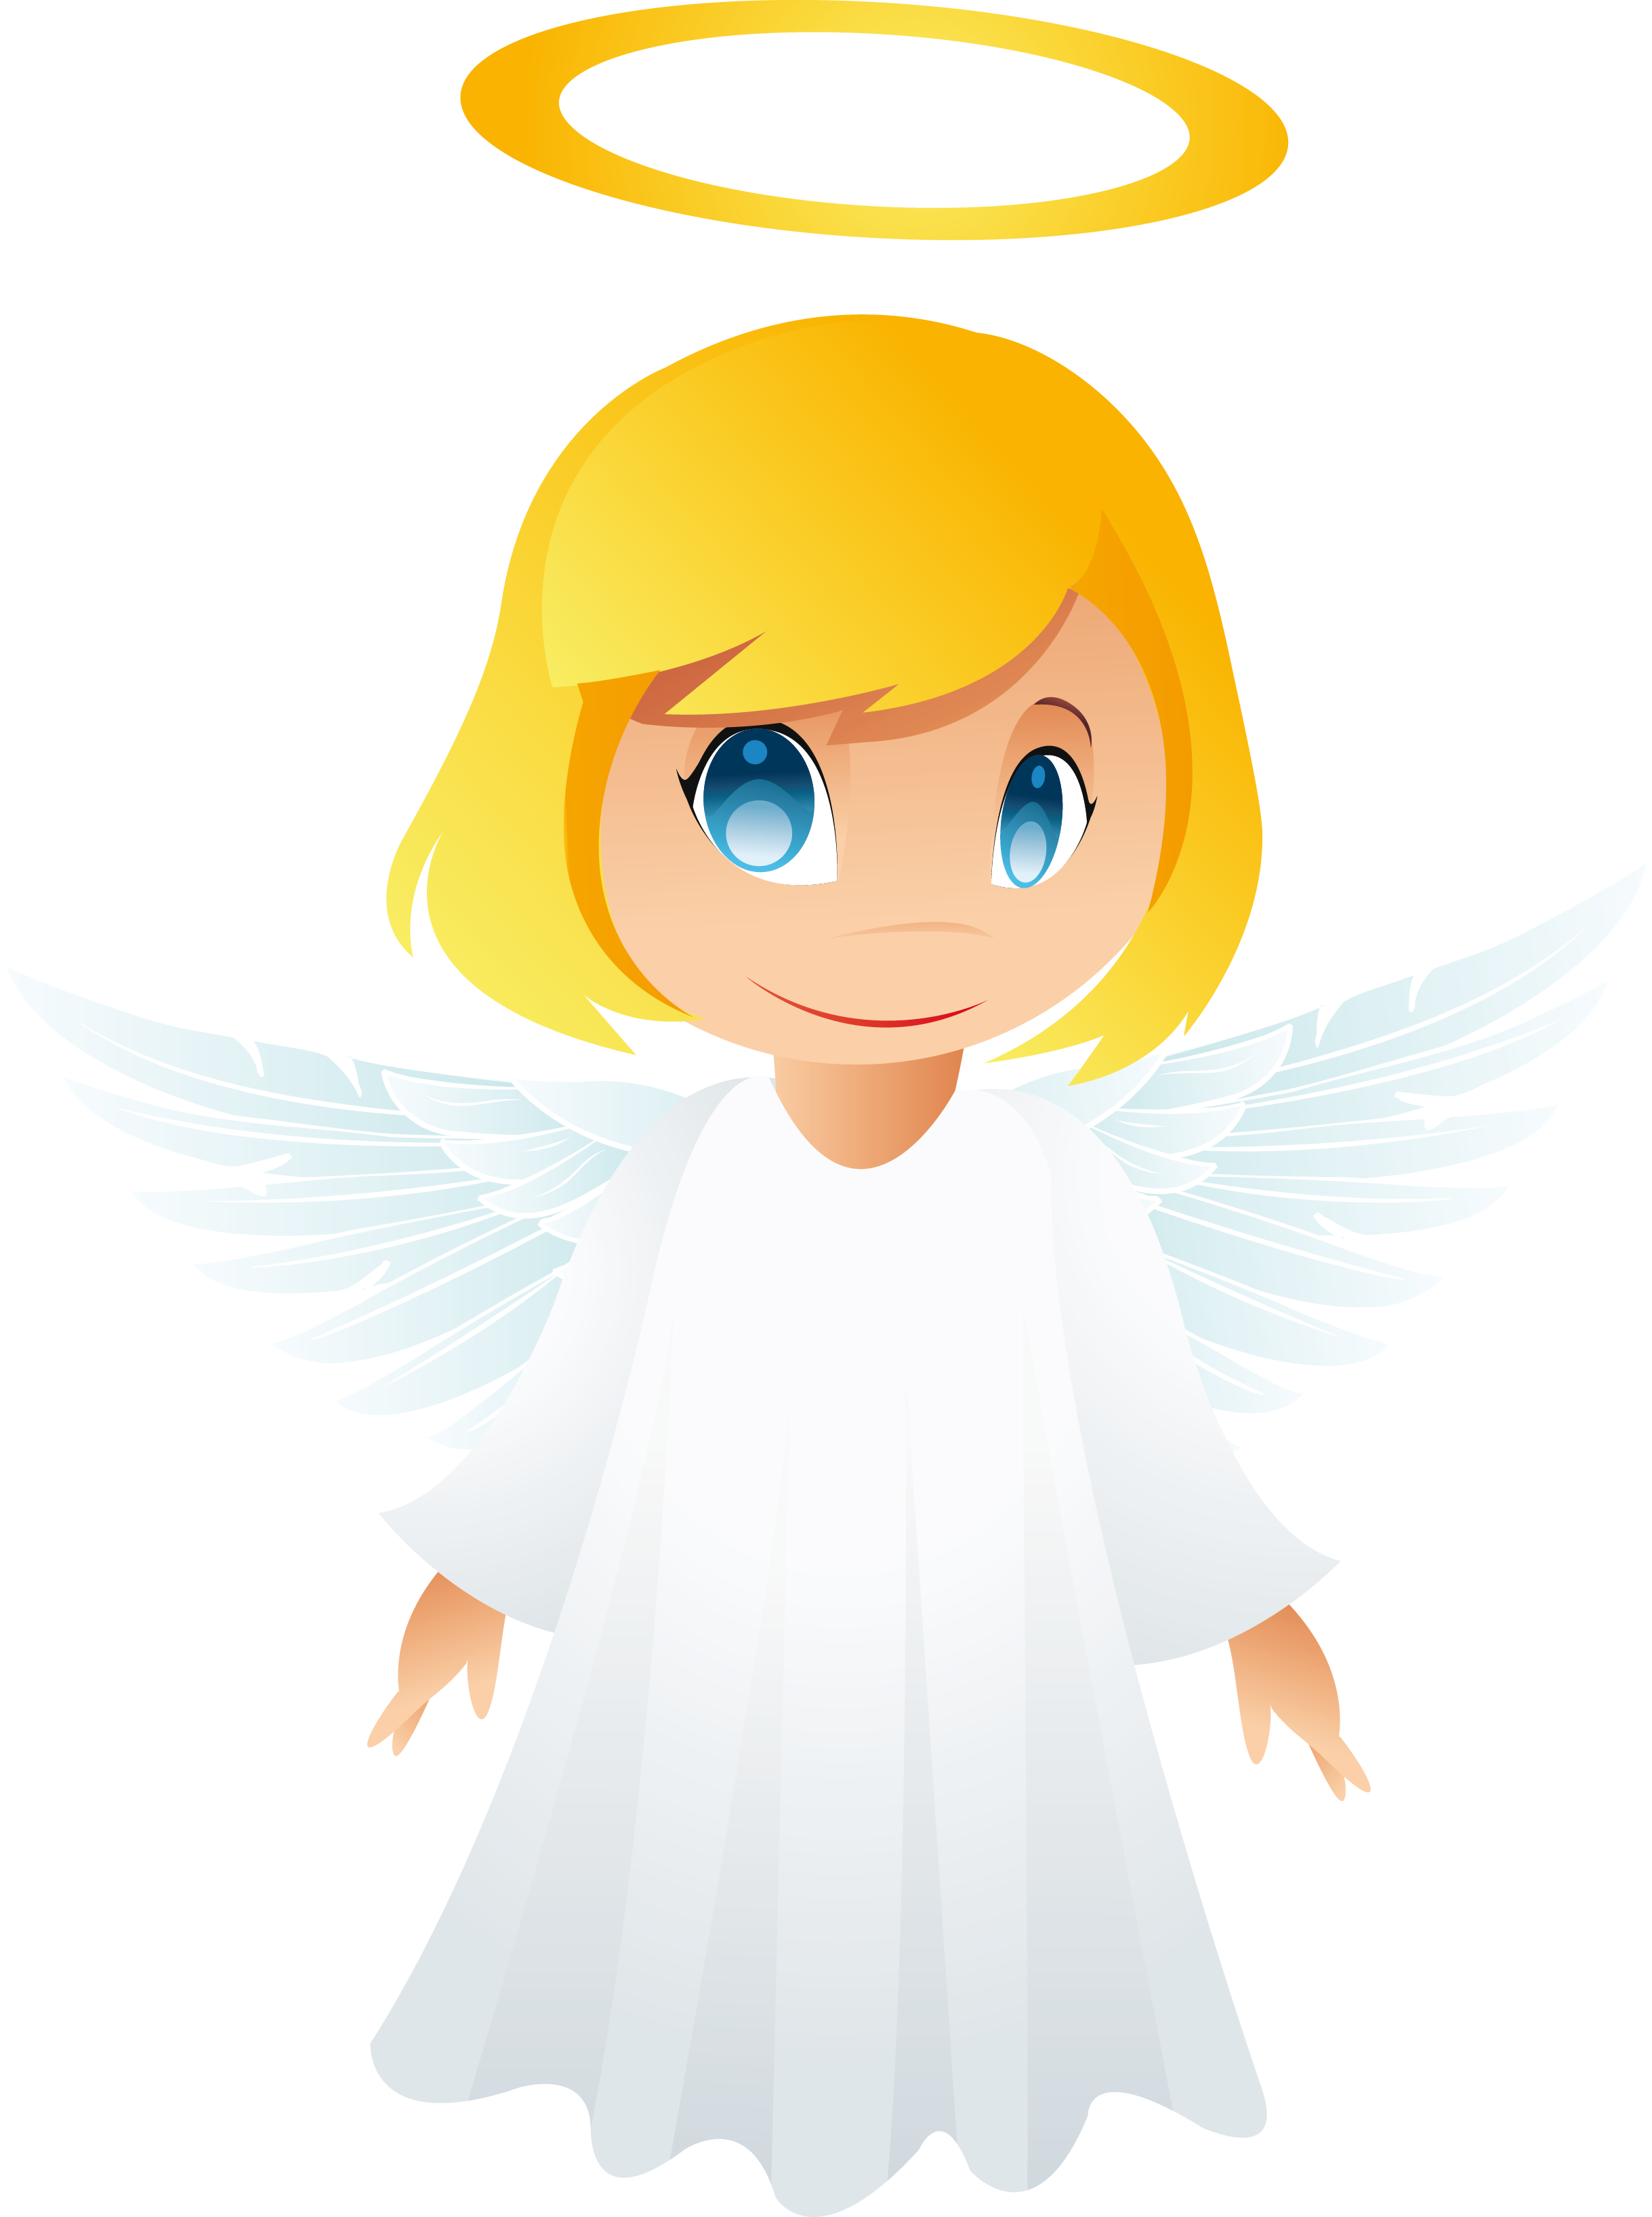 Images Of An Angel - ClipArt Best - ClipArt Best